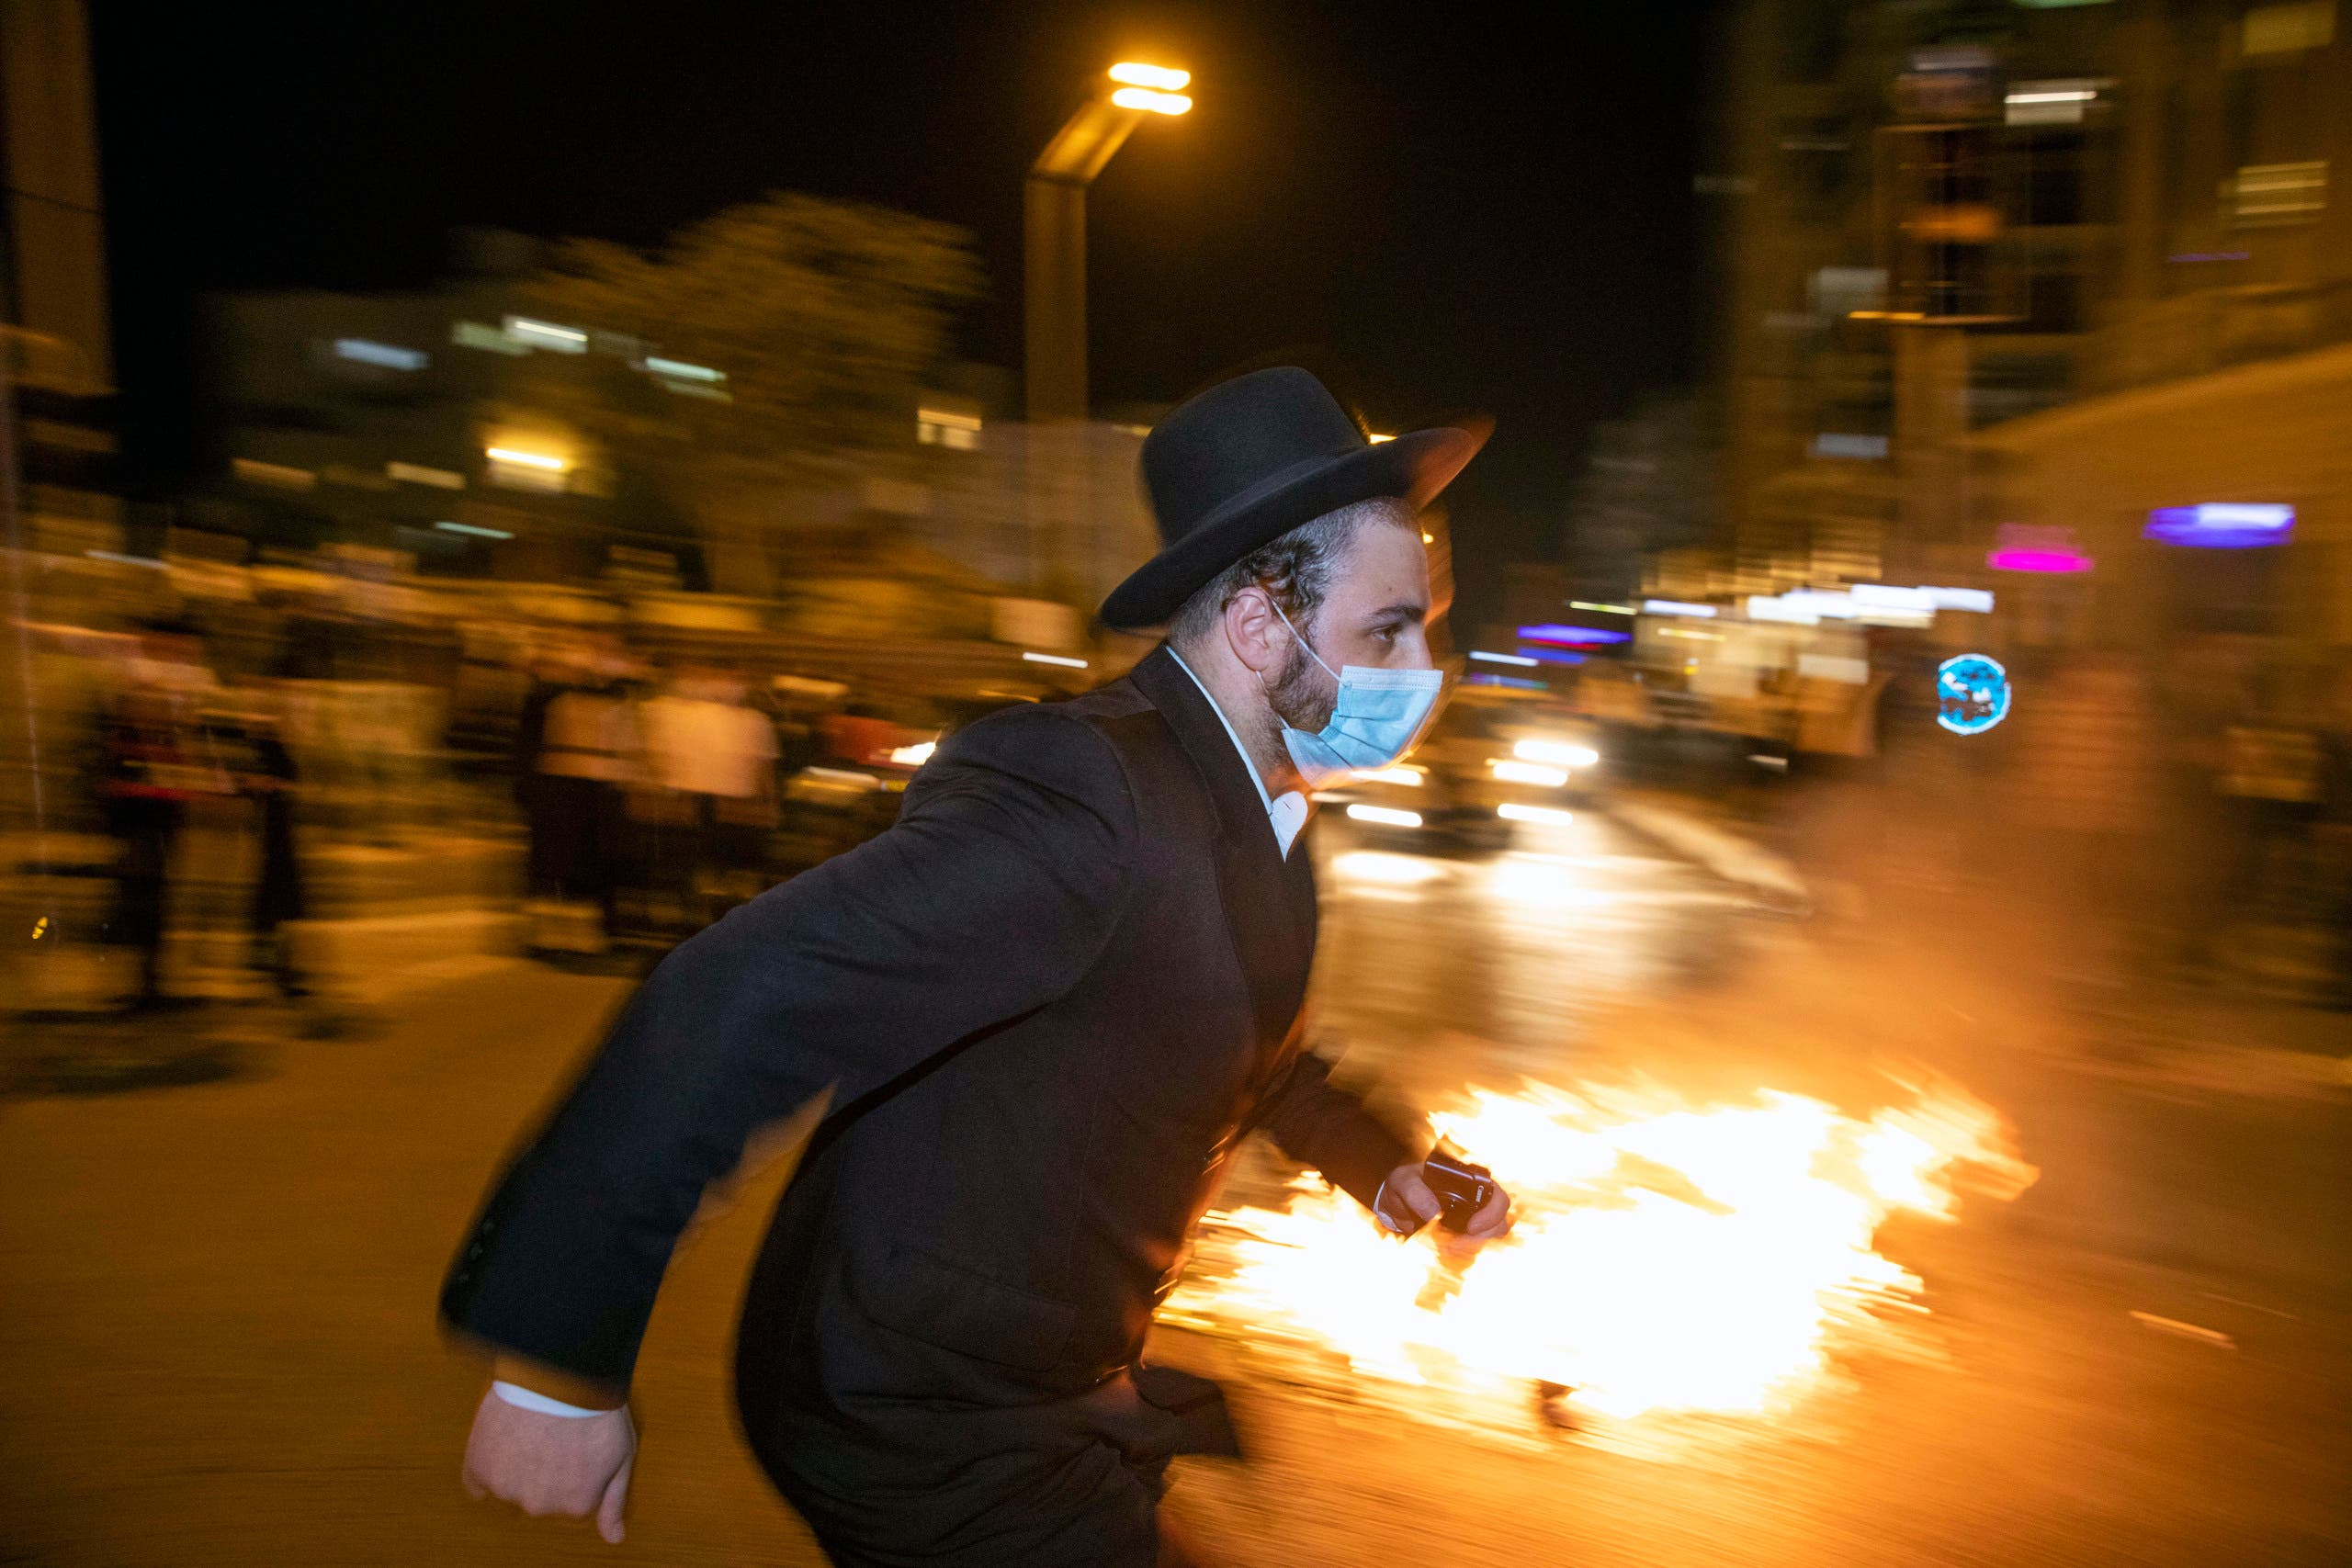 An Ultra-Orthodox Jewish man runs during a protest against lockdown put in place due to a coronavirus outbreak, in Jerusalem, Monday, July 13, 2020. (AP)